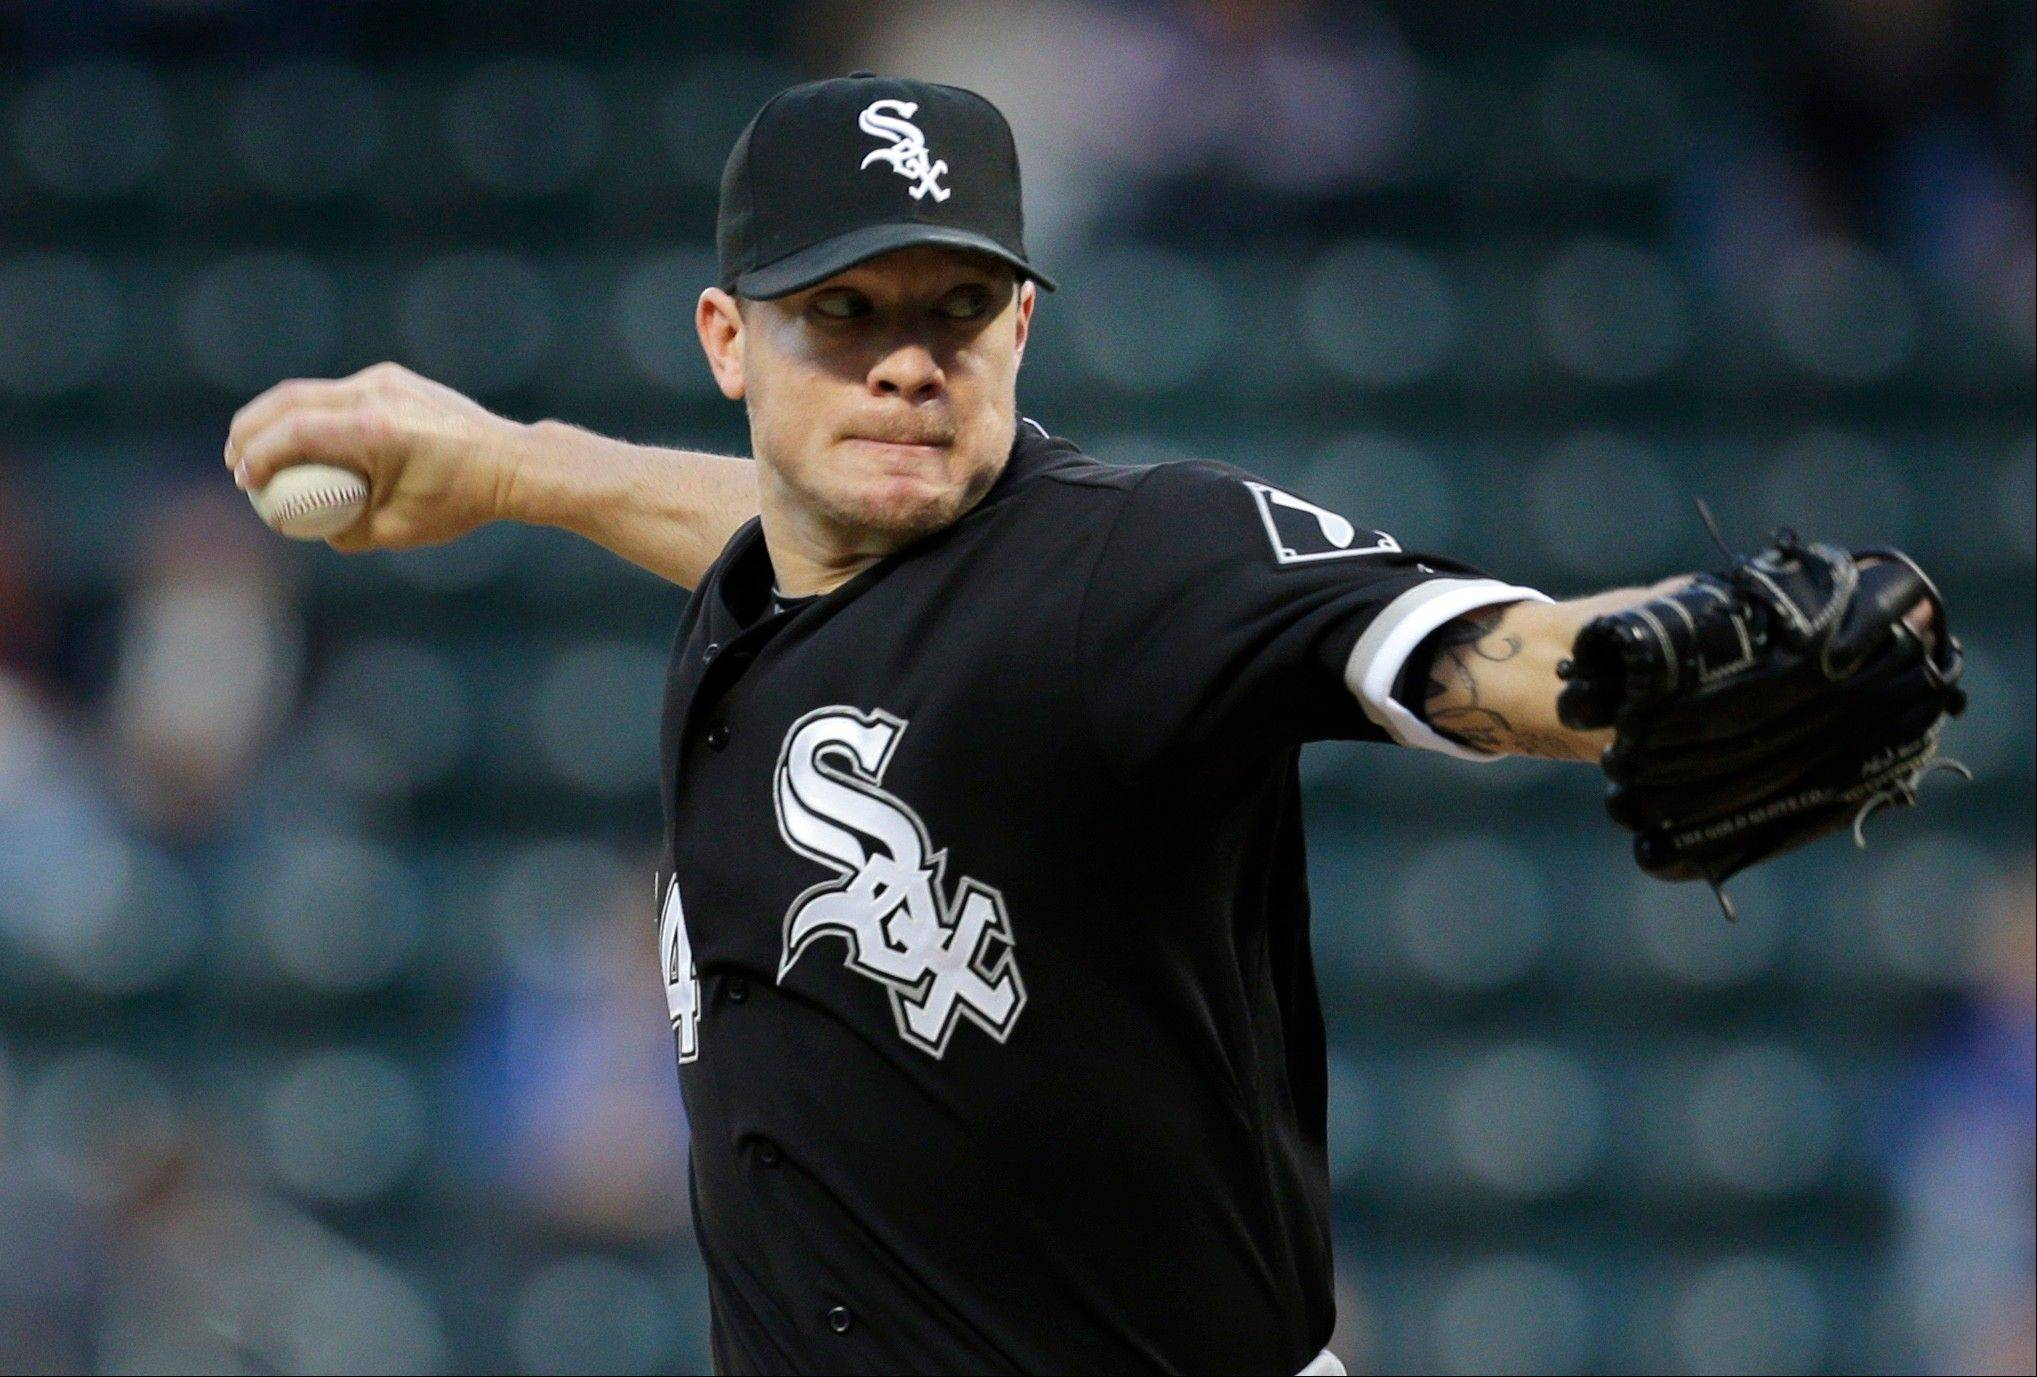 White Sox starter Jake Peavy could be the only right-hander in the rotation when John Danks returns.